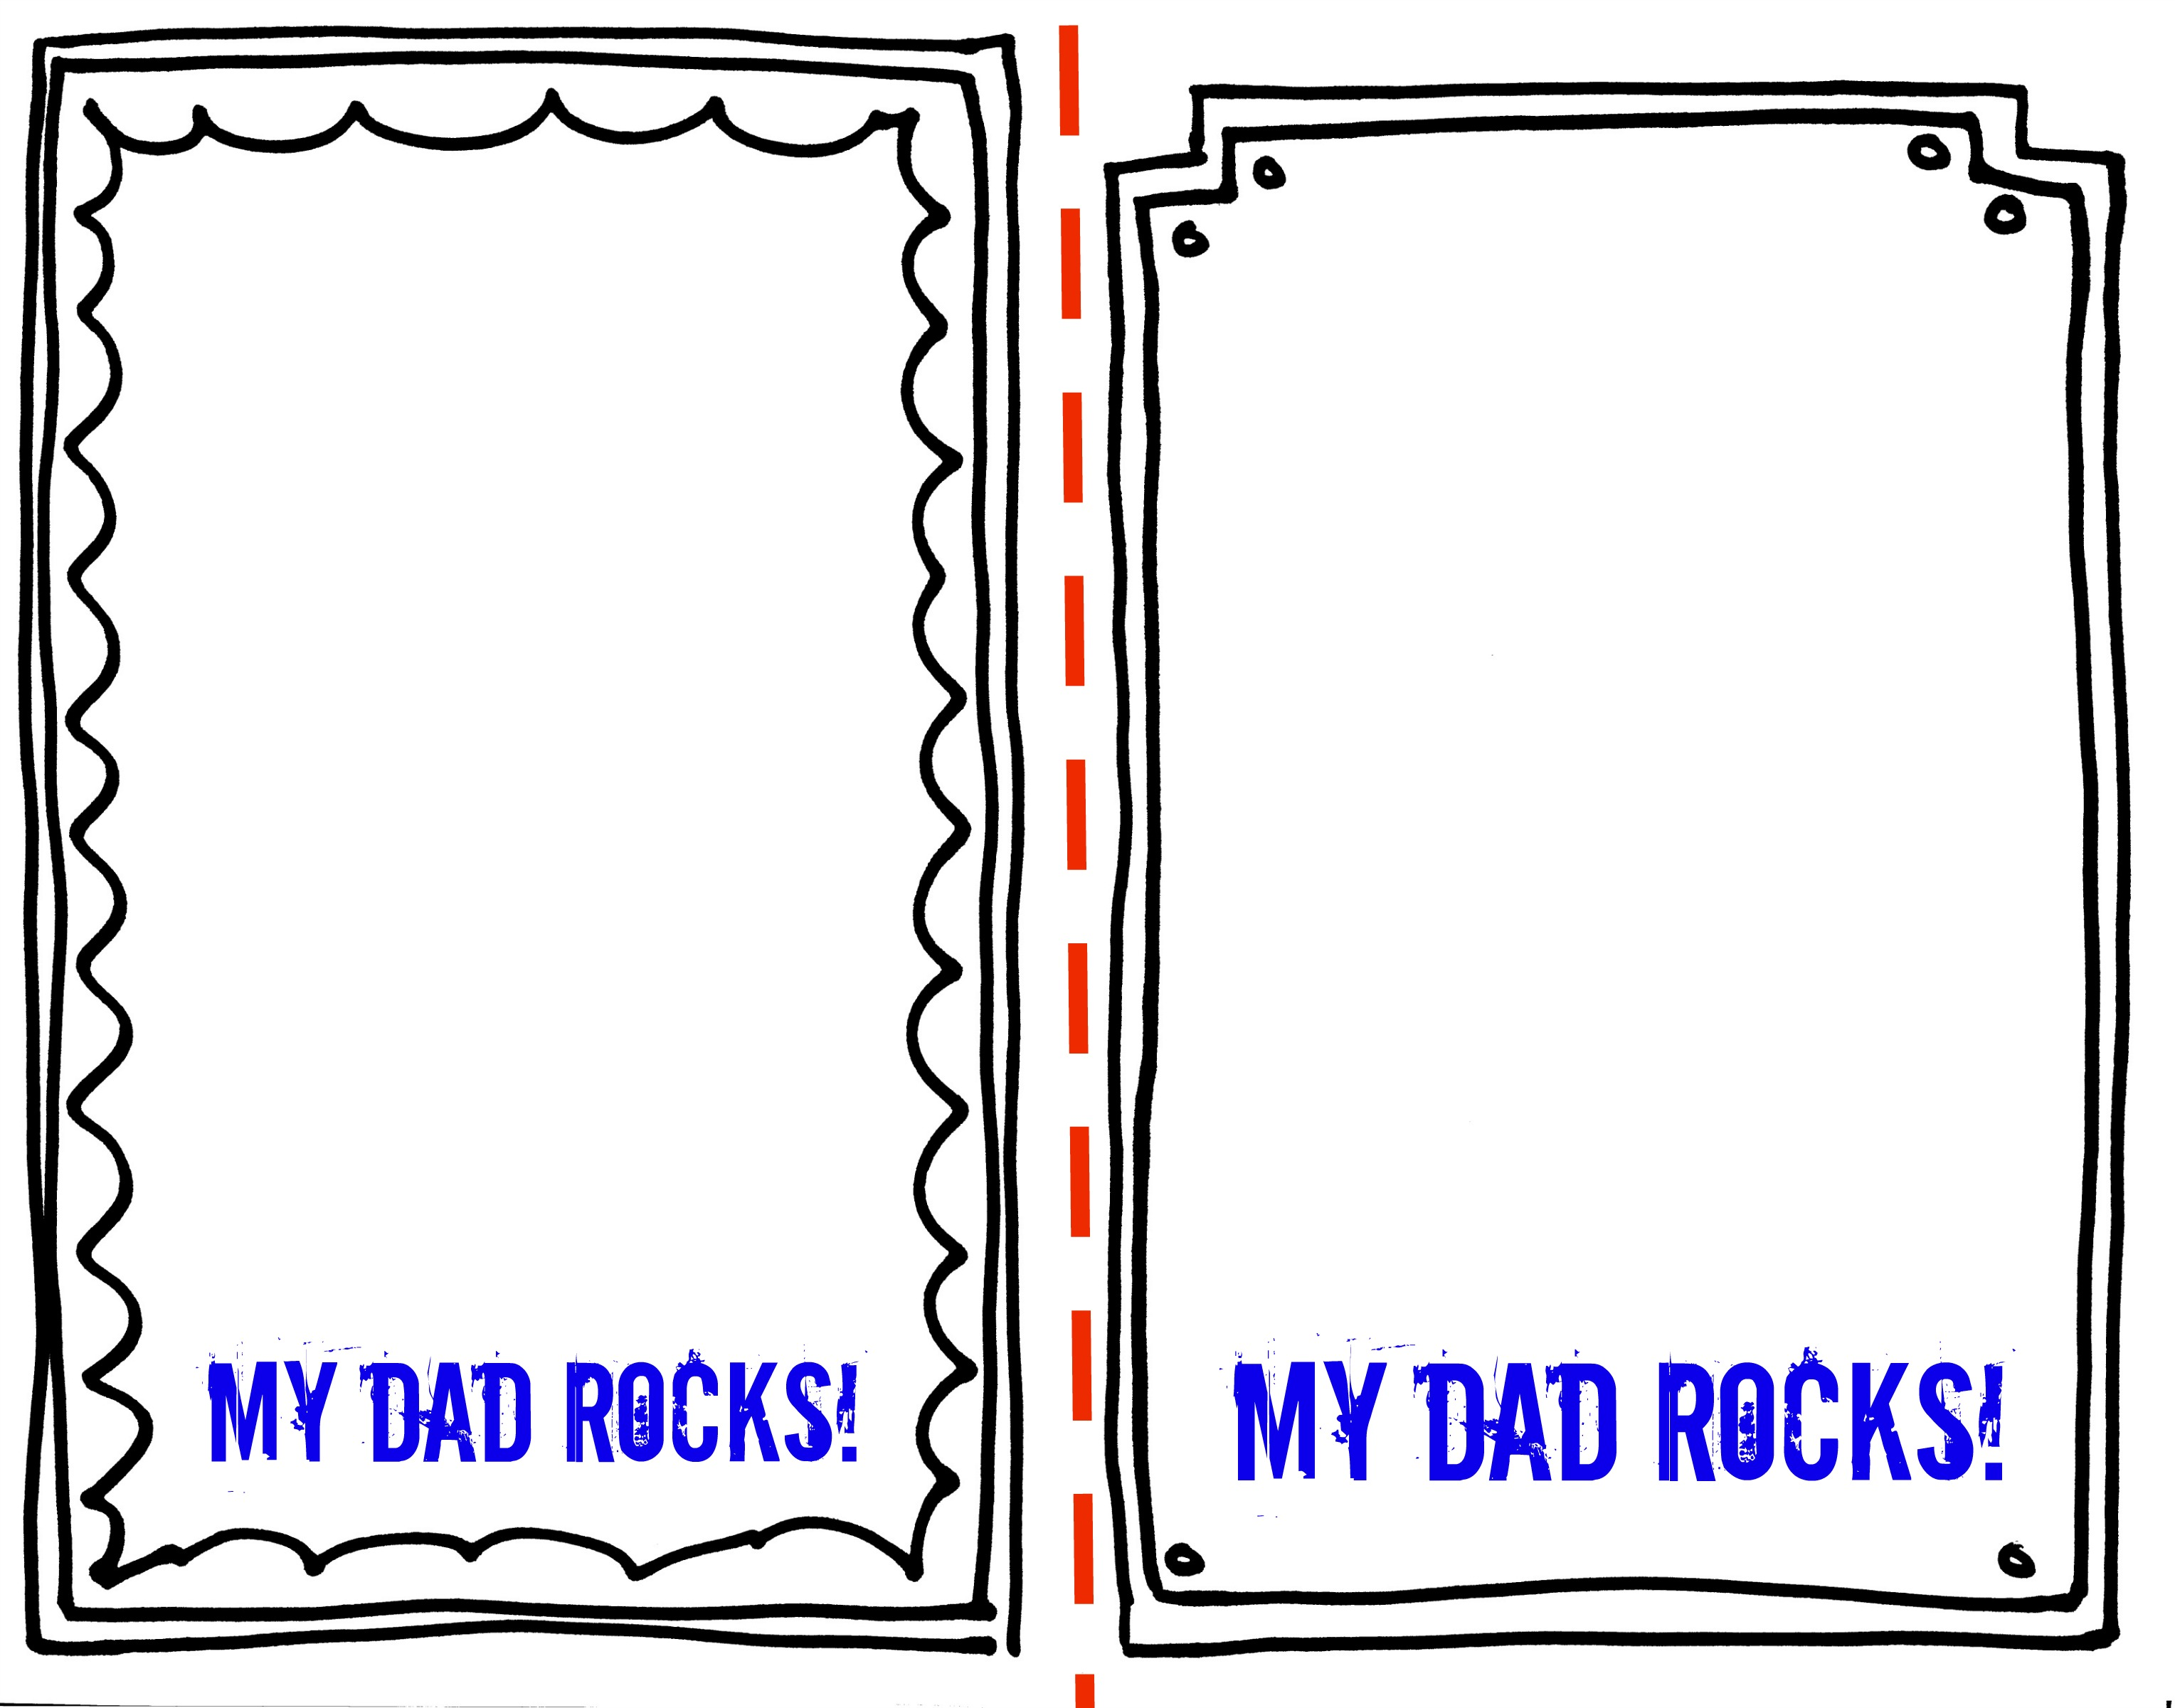 Dad Rocks Father S Day Gift Free Printable Non Toy Gifts